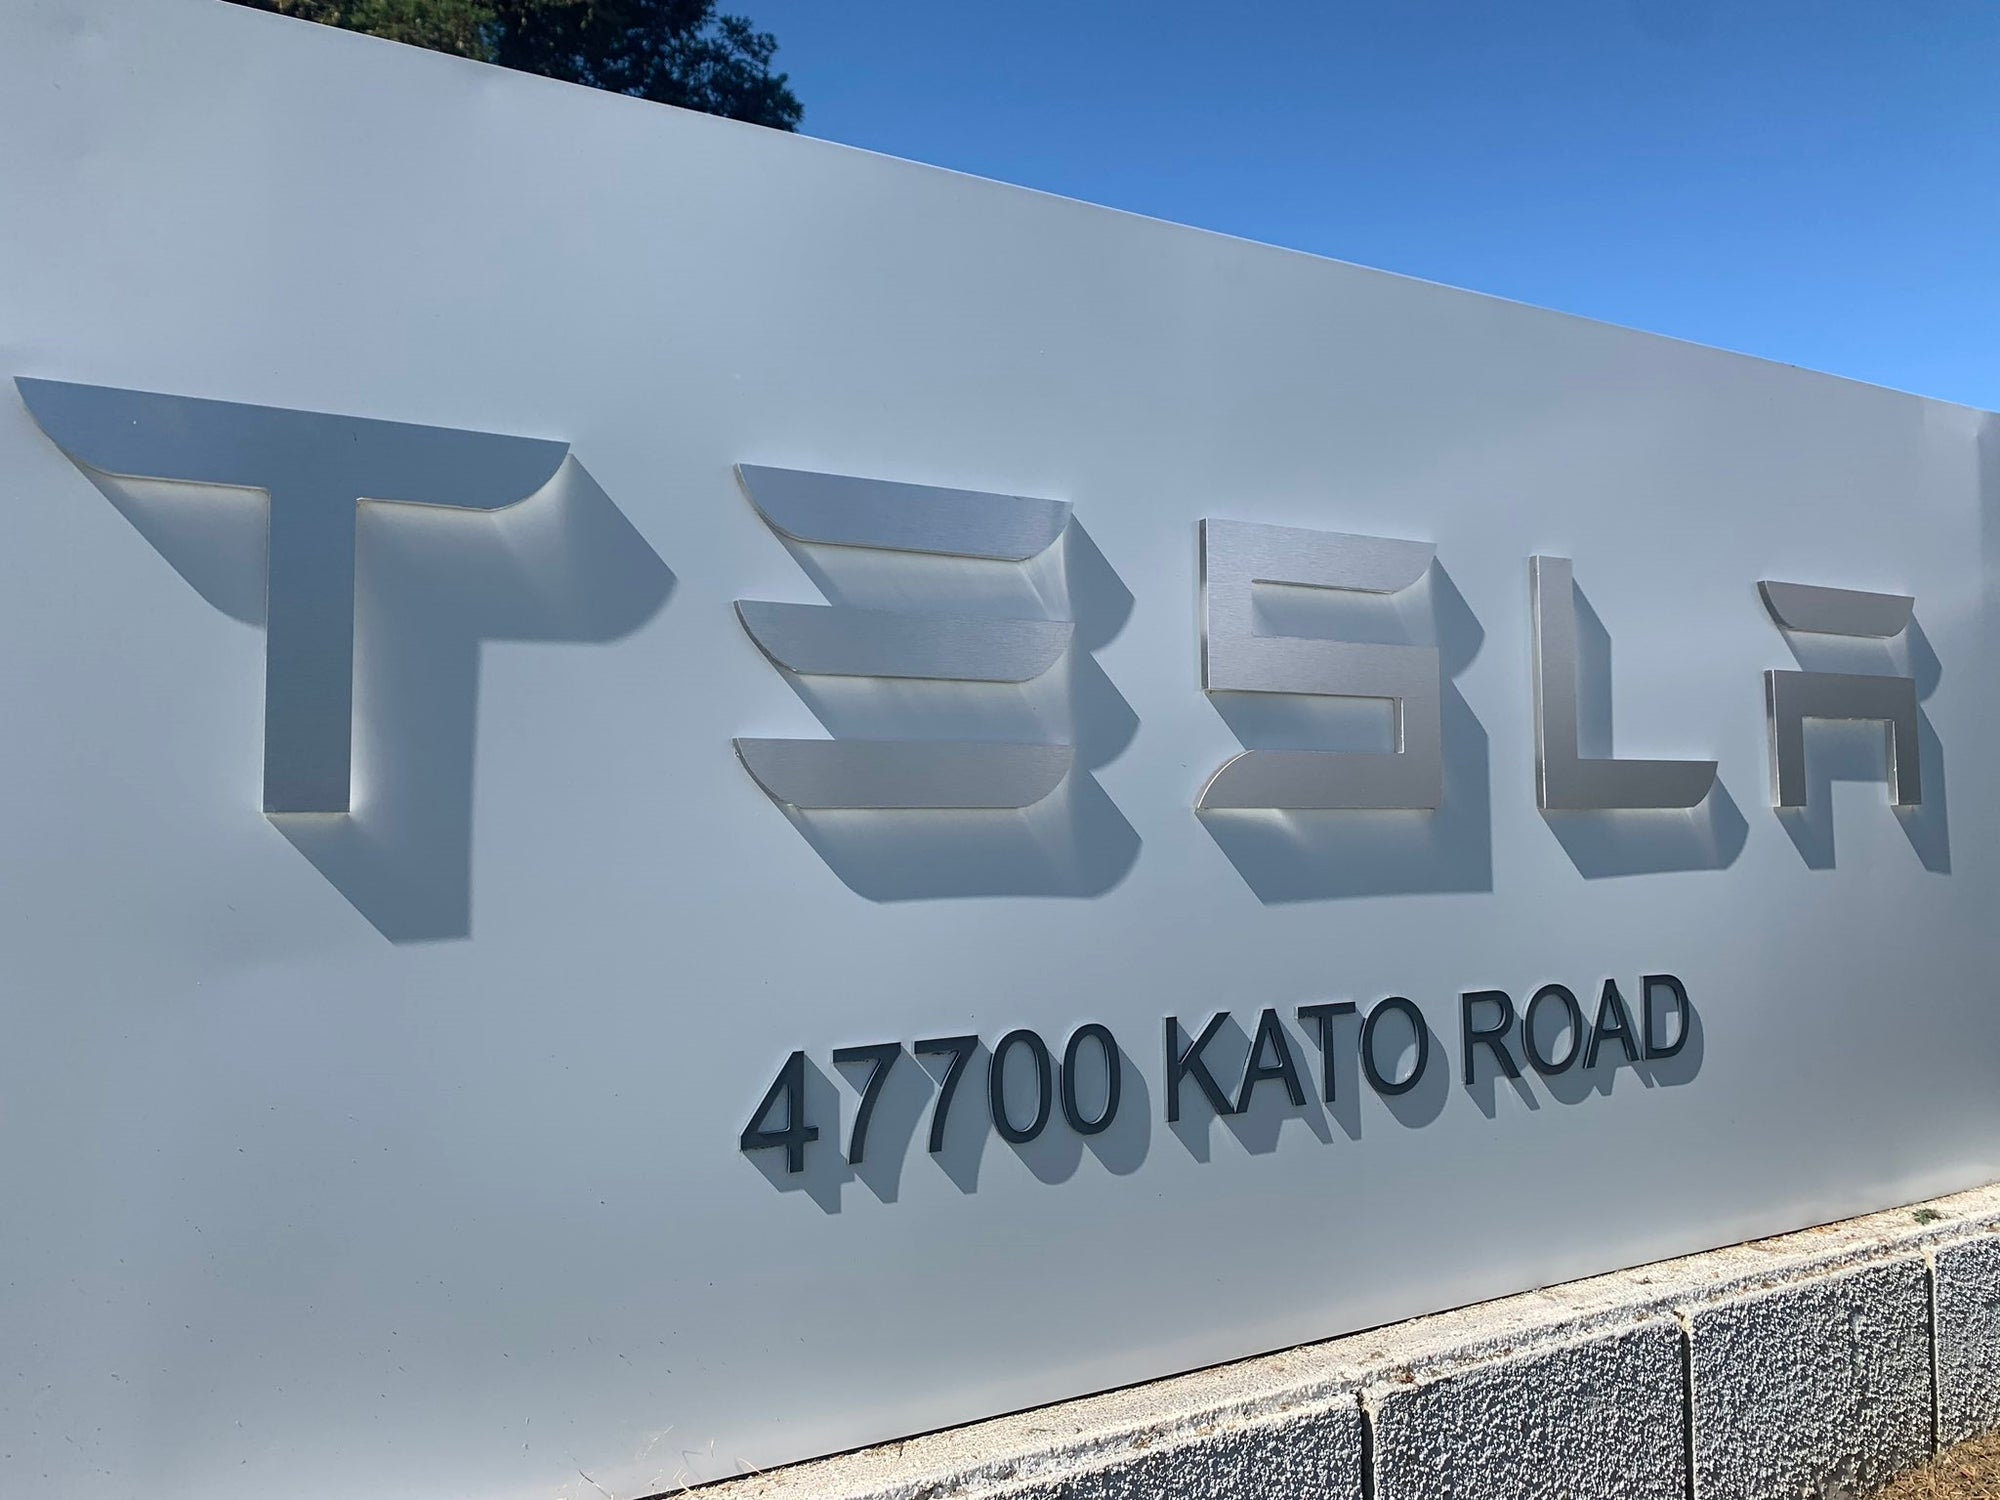 Tesla Roadrunner Project at Kato Road Is World's Most Advanced Battery Line